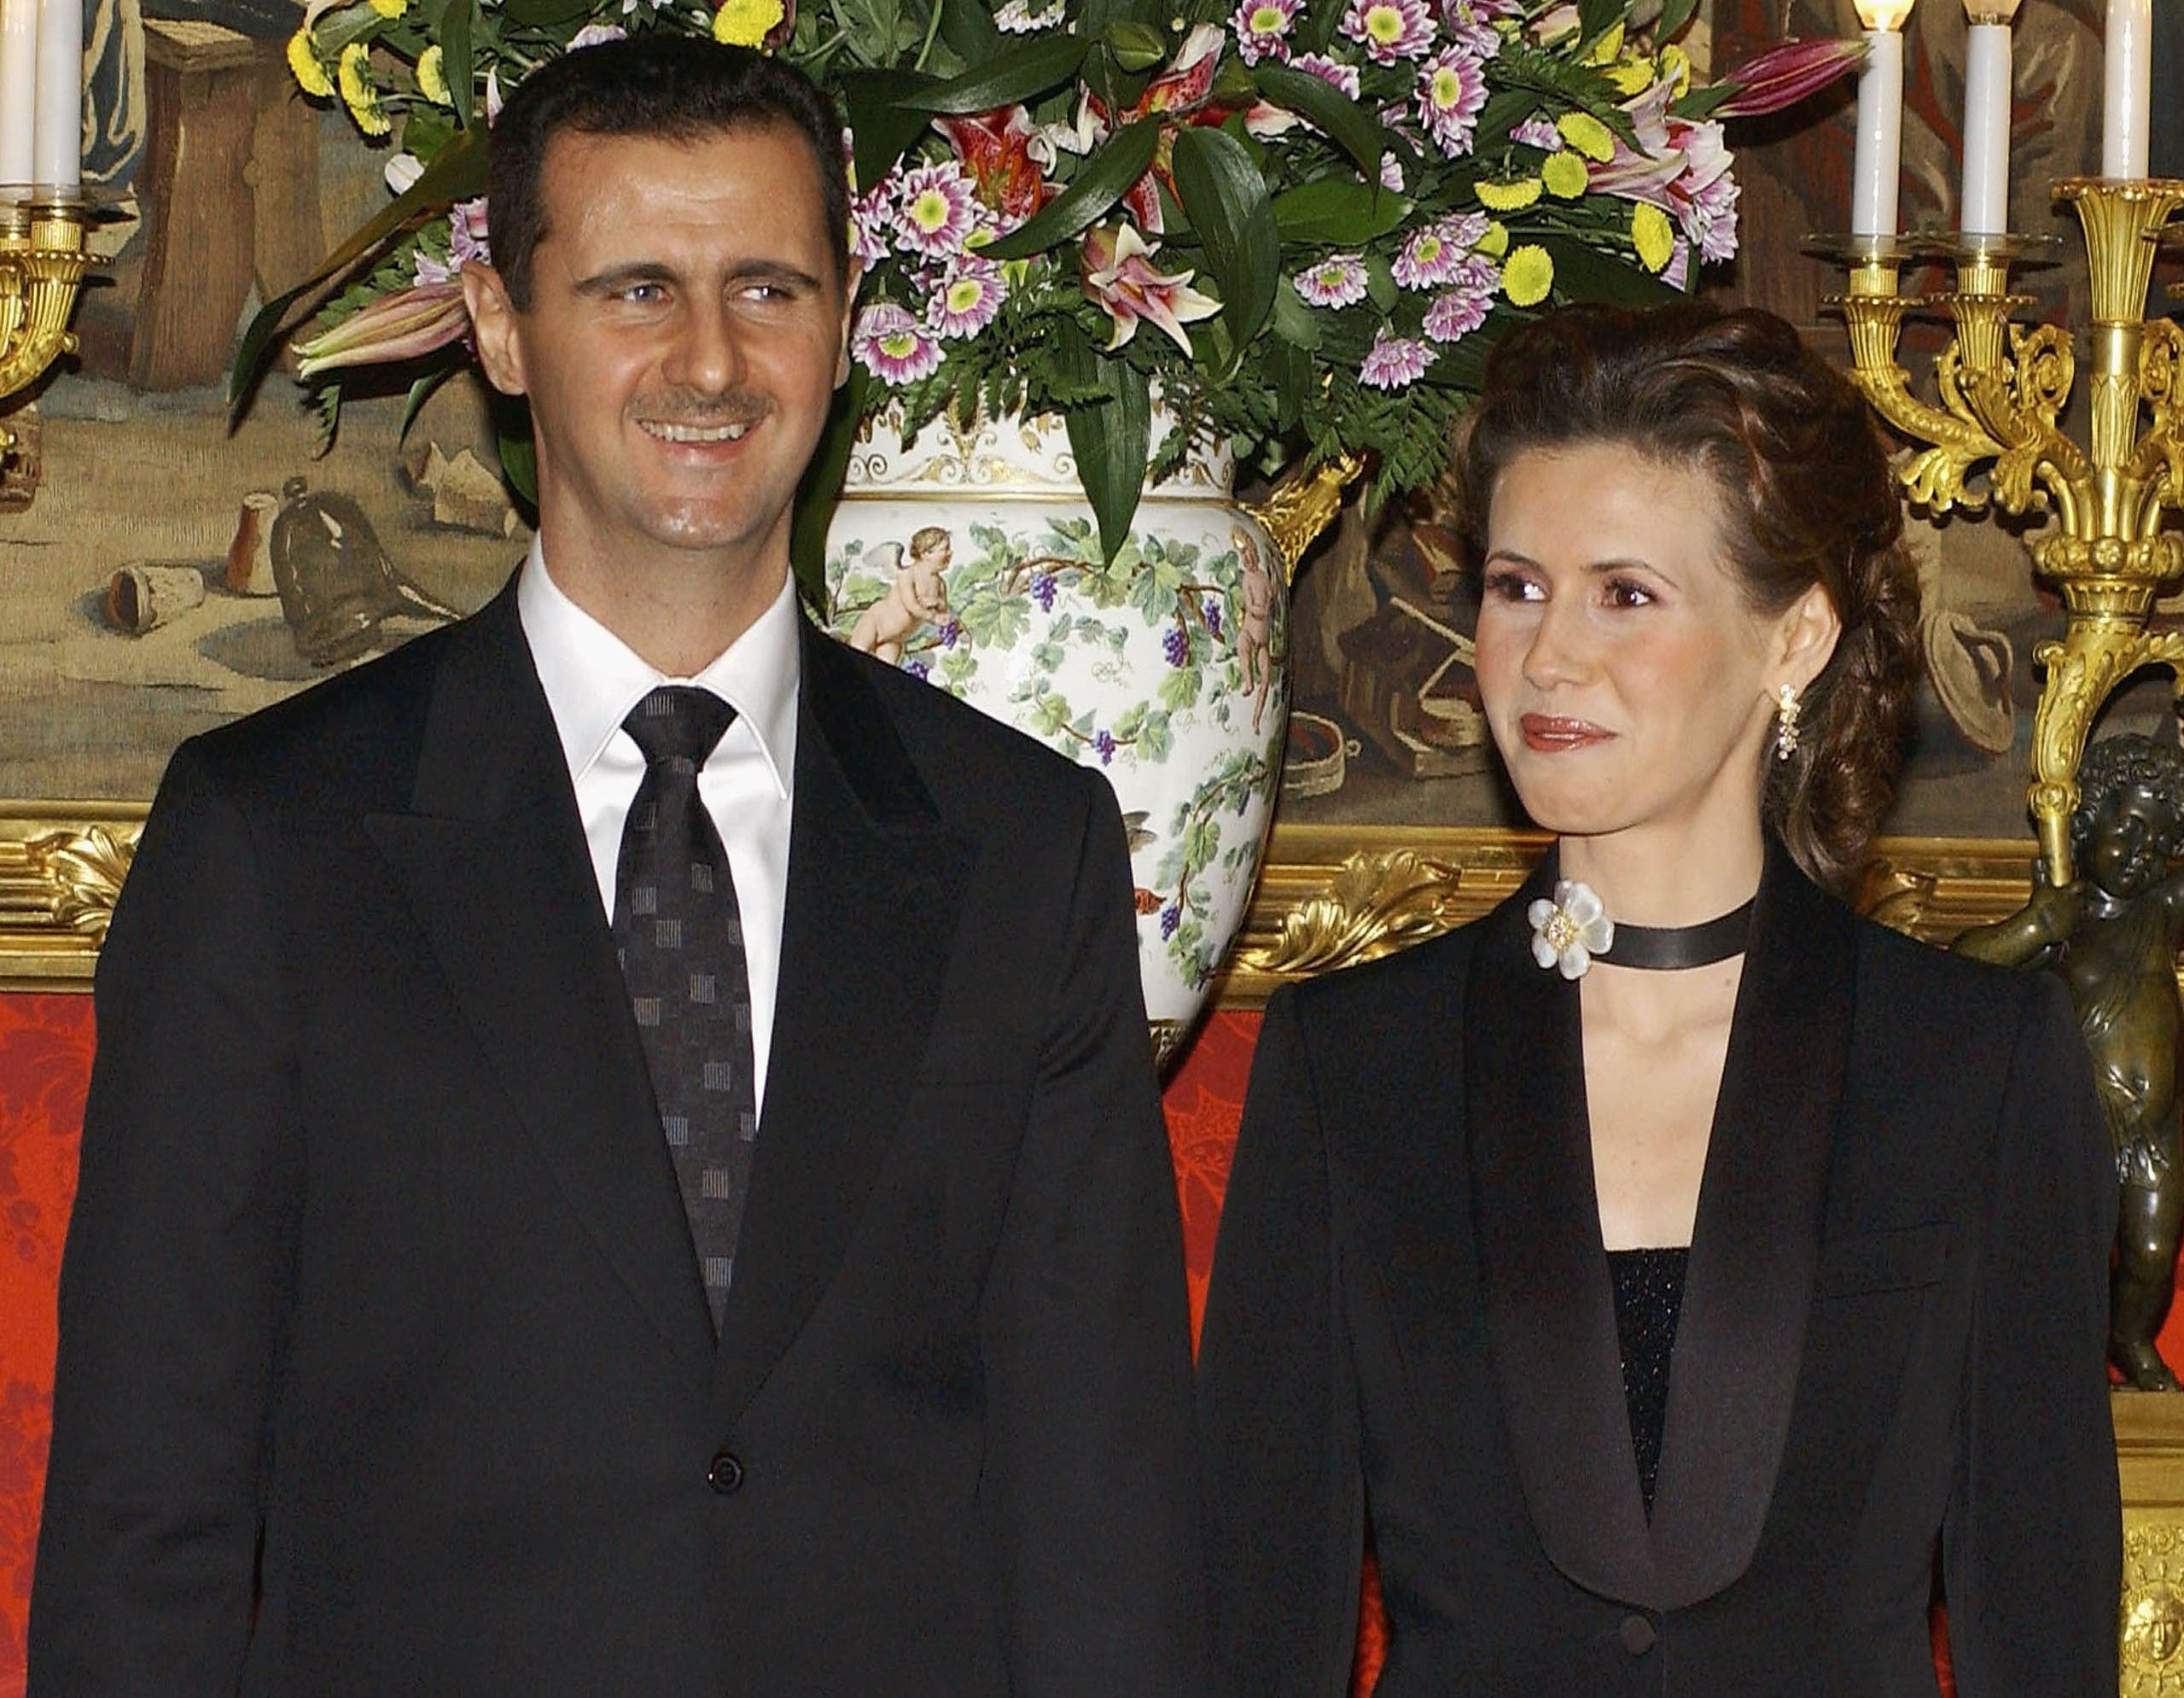 Asma Assad faces strong criticism and outrage for her supportive stance on her husband's actions.